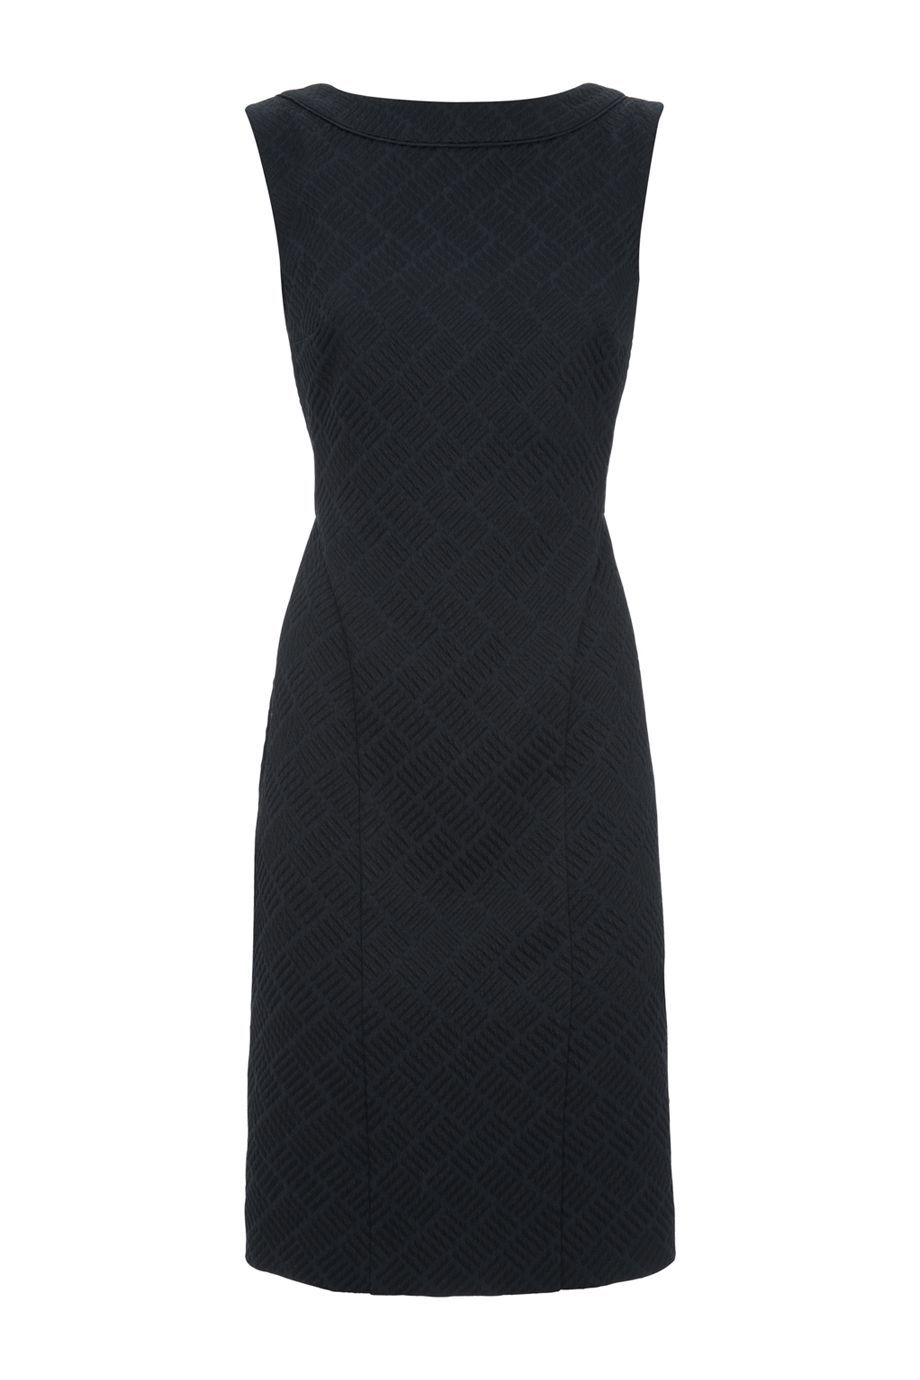 Cora Dress, Navy - style: shift; neckline: slash/boat neckline; fit: tailored/fitted; pattern: plain; sleeve style: sleeveless; predominant colour: navy; occasions: evening, occasion; length: just above the knee; fibres: sheepskin - 100%; sleeve length: sleeveless; pattern type: fabric; texture group: woven light midweight; season: a/w 2015